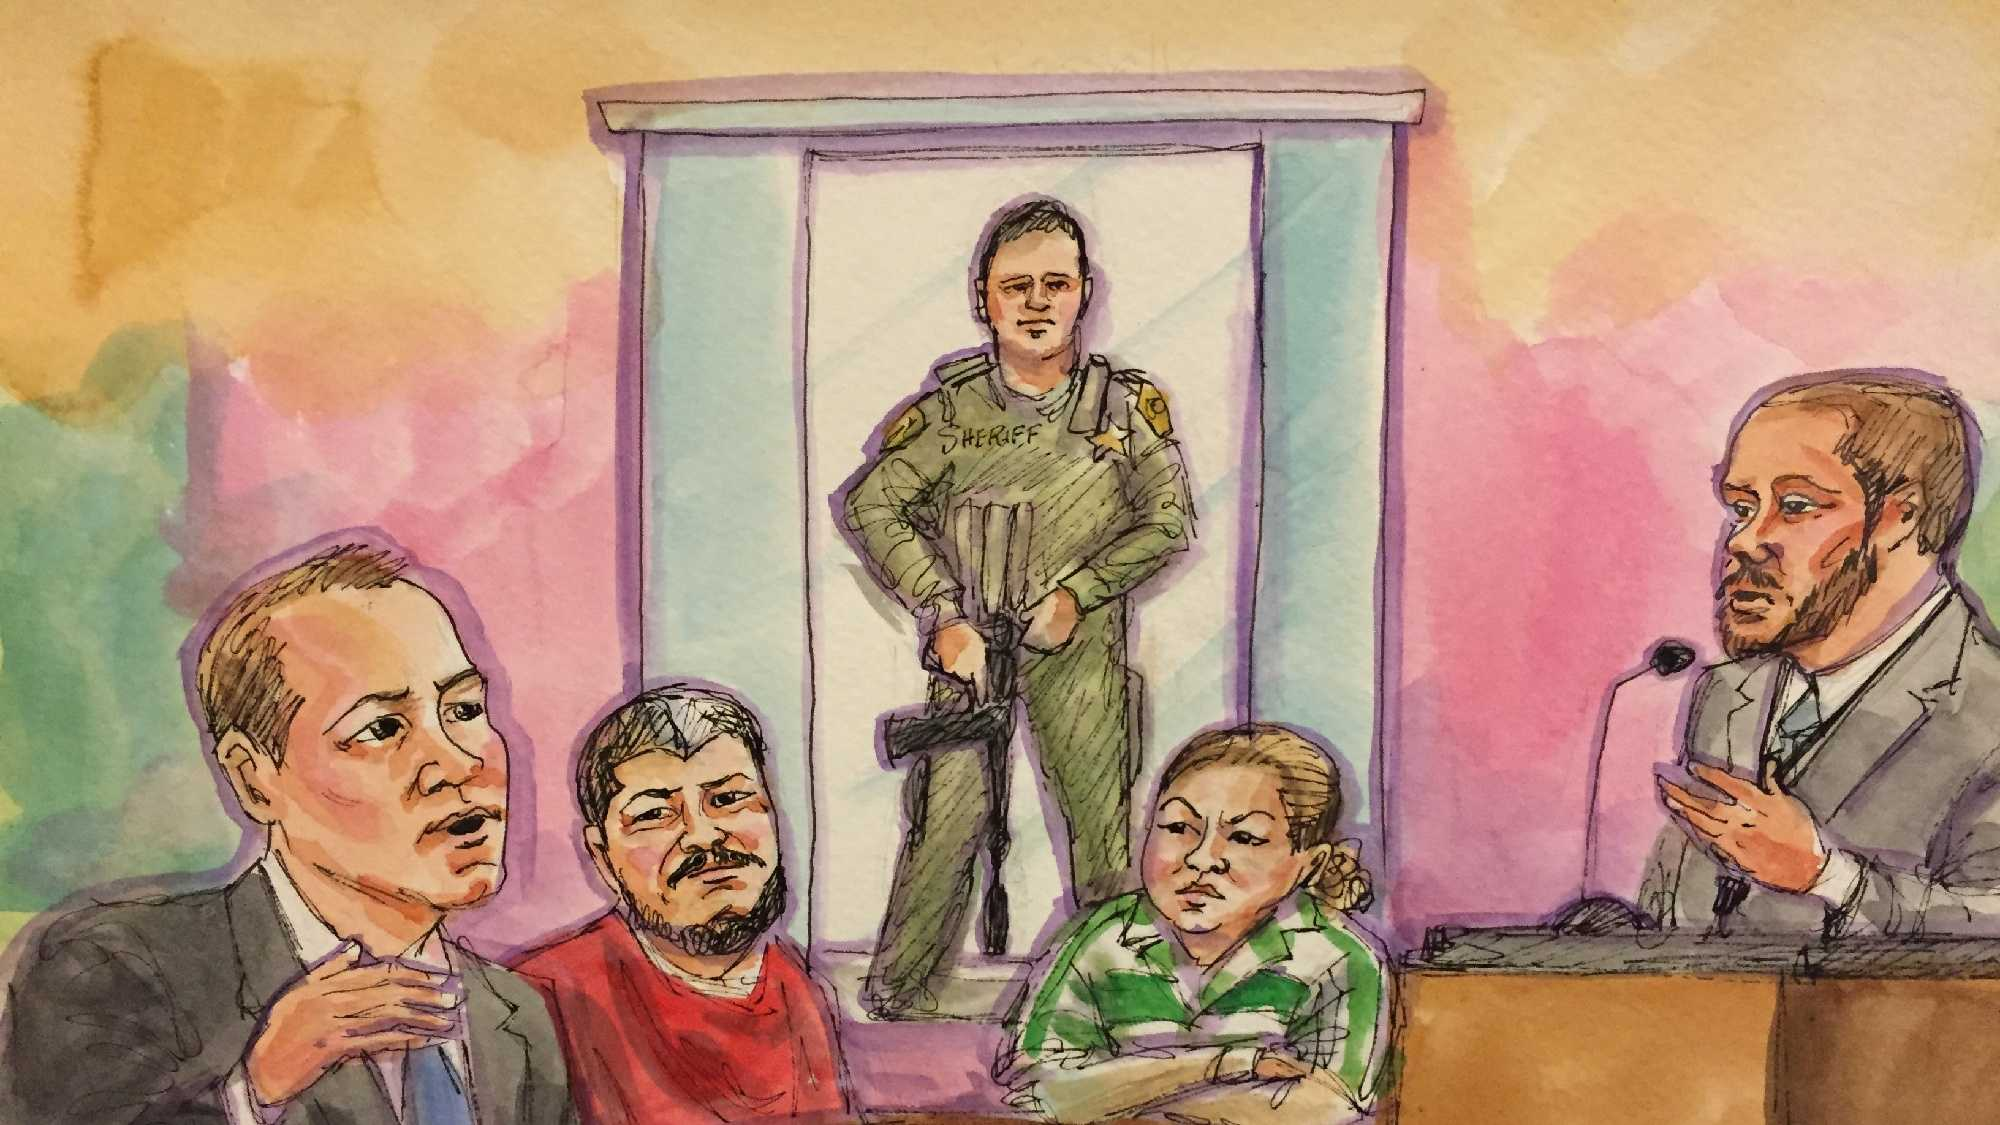 Courtroom drawing shows Luis Bracamontes and Janelle Monroy during the last day of the preliminary hearing on Wednesday, March 30, 2016.